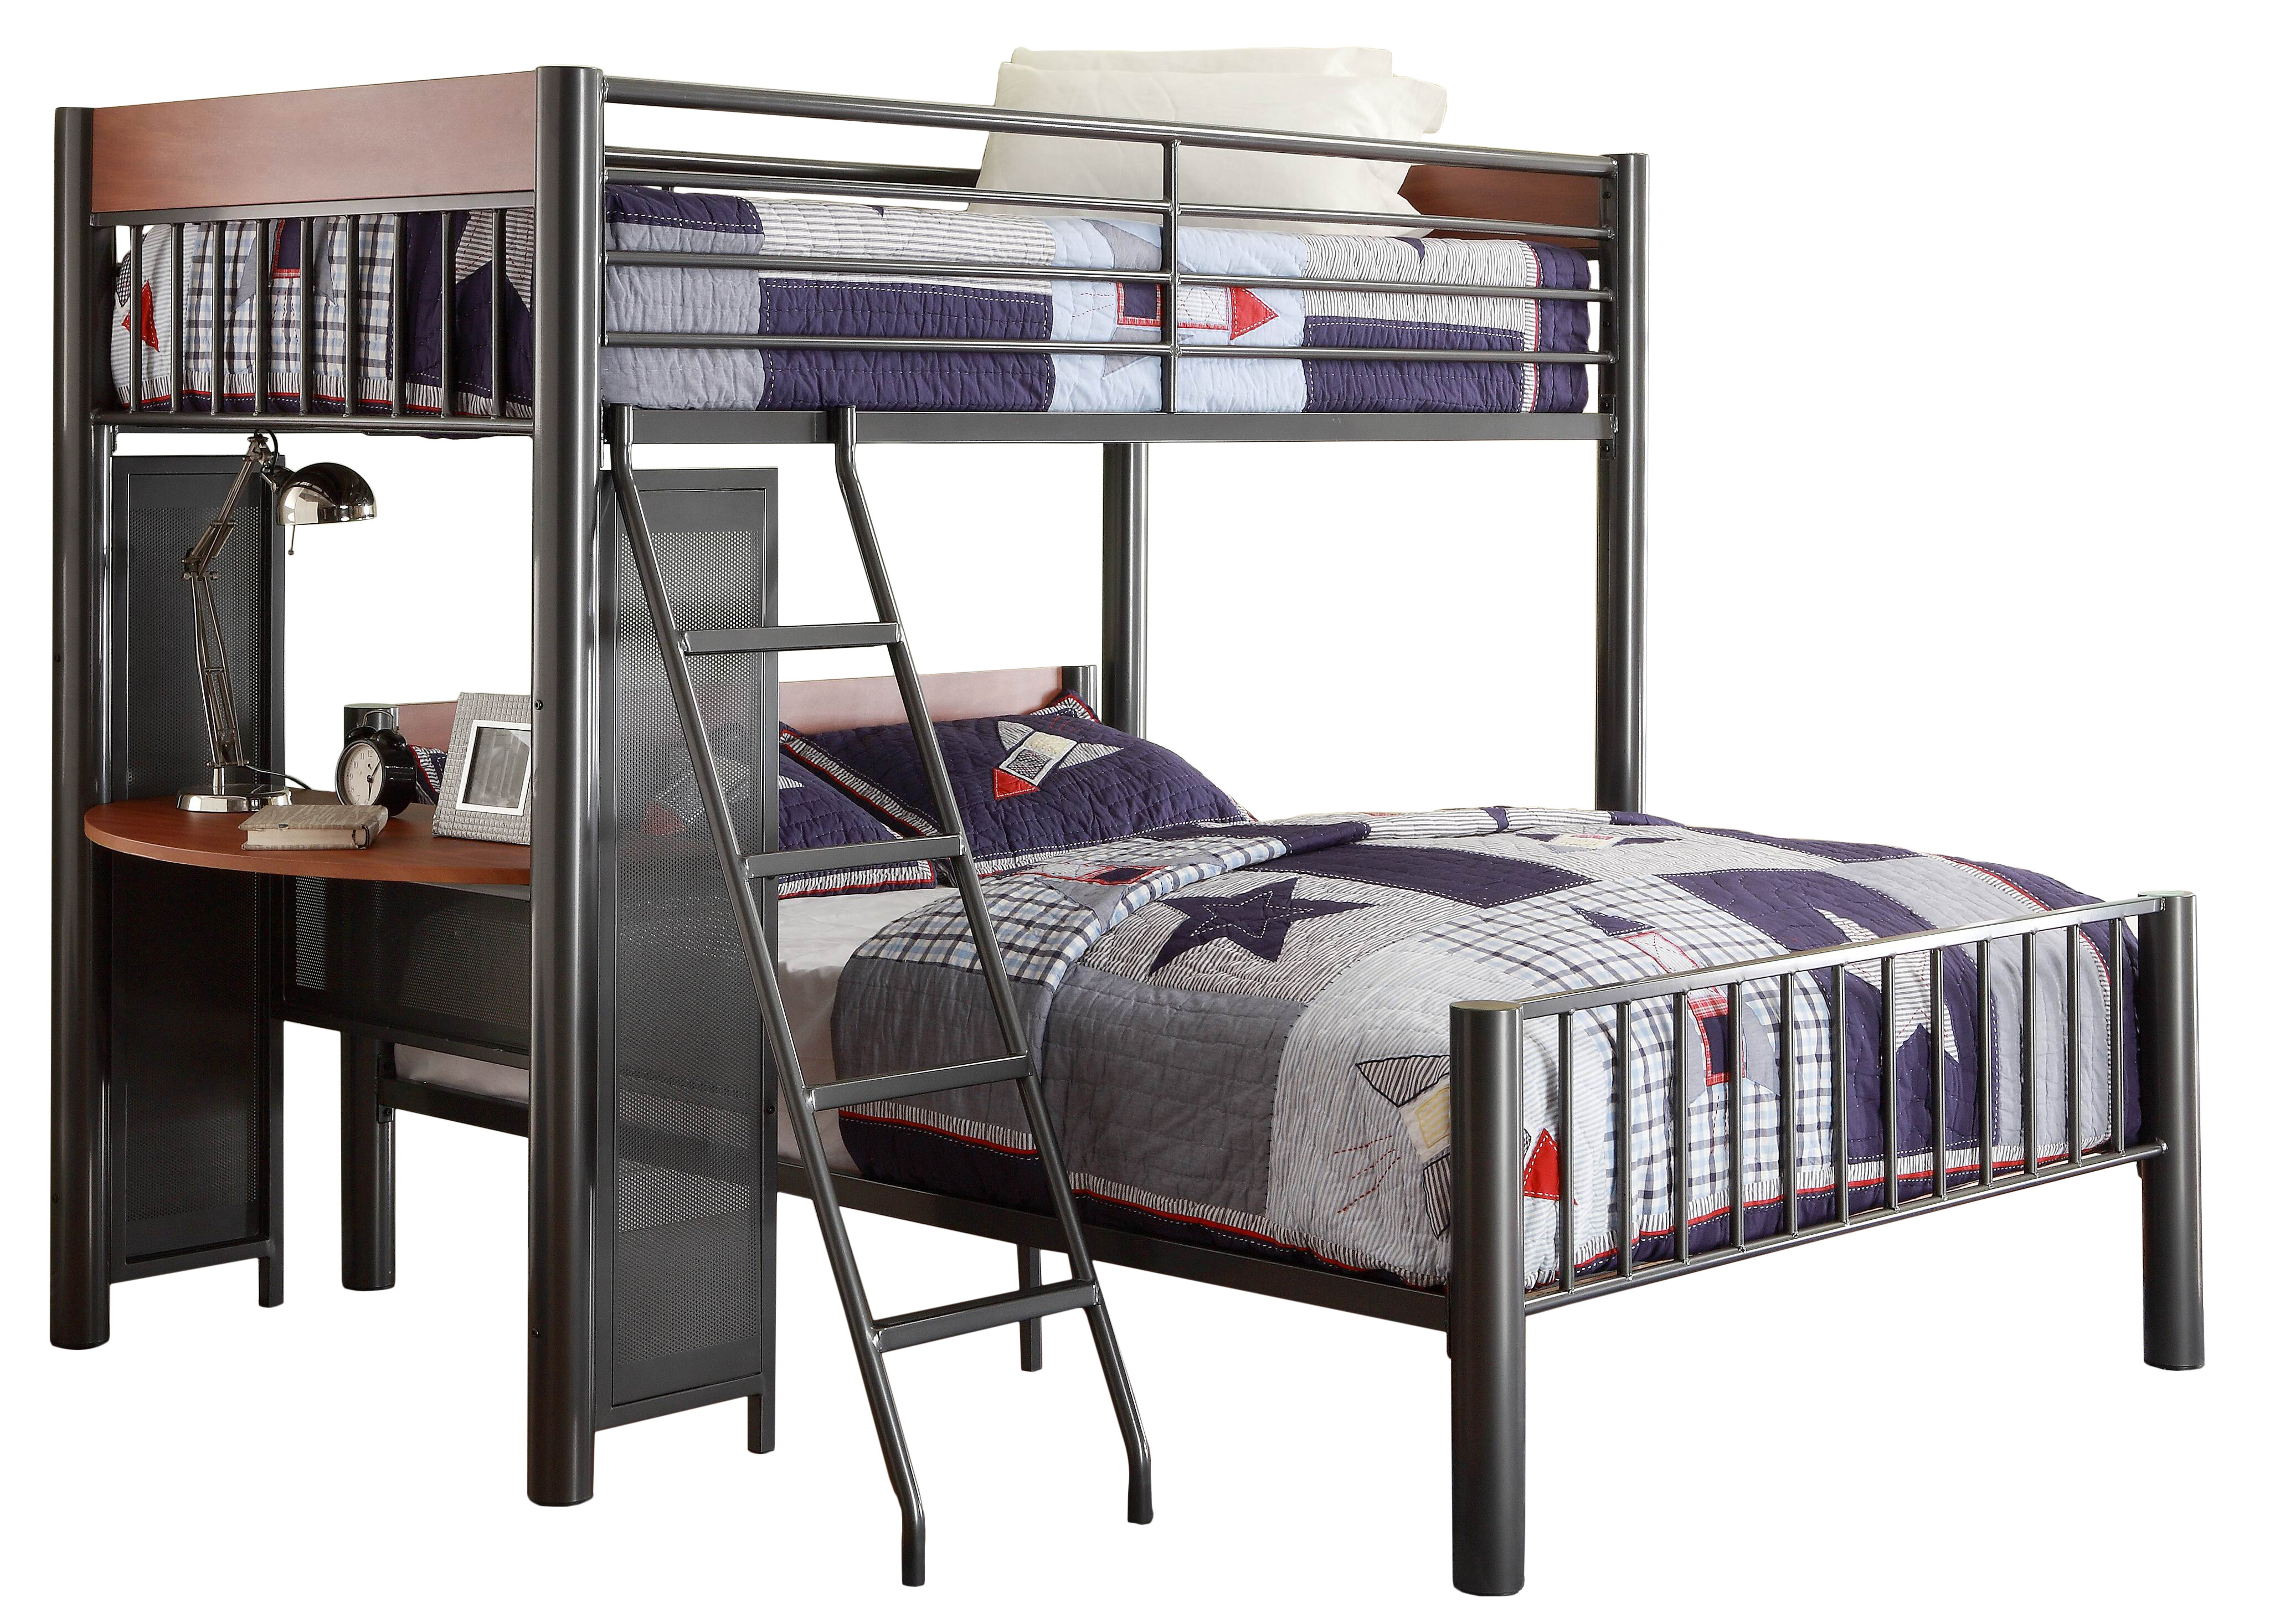 190 & Twyla Twin over Full L-Shaped Bunk Bed